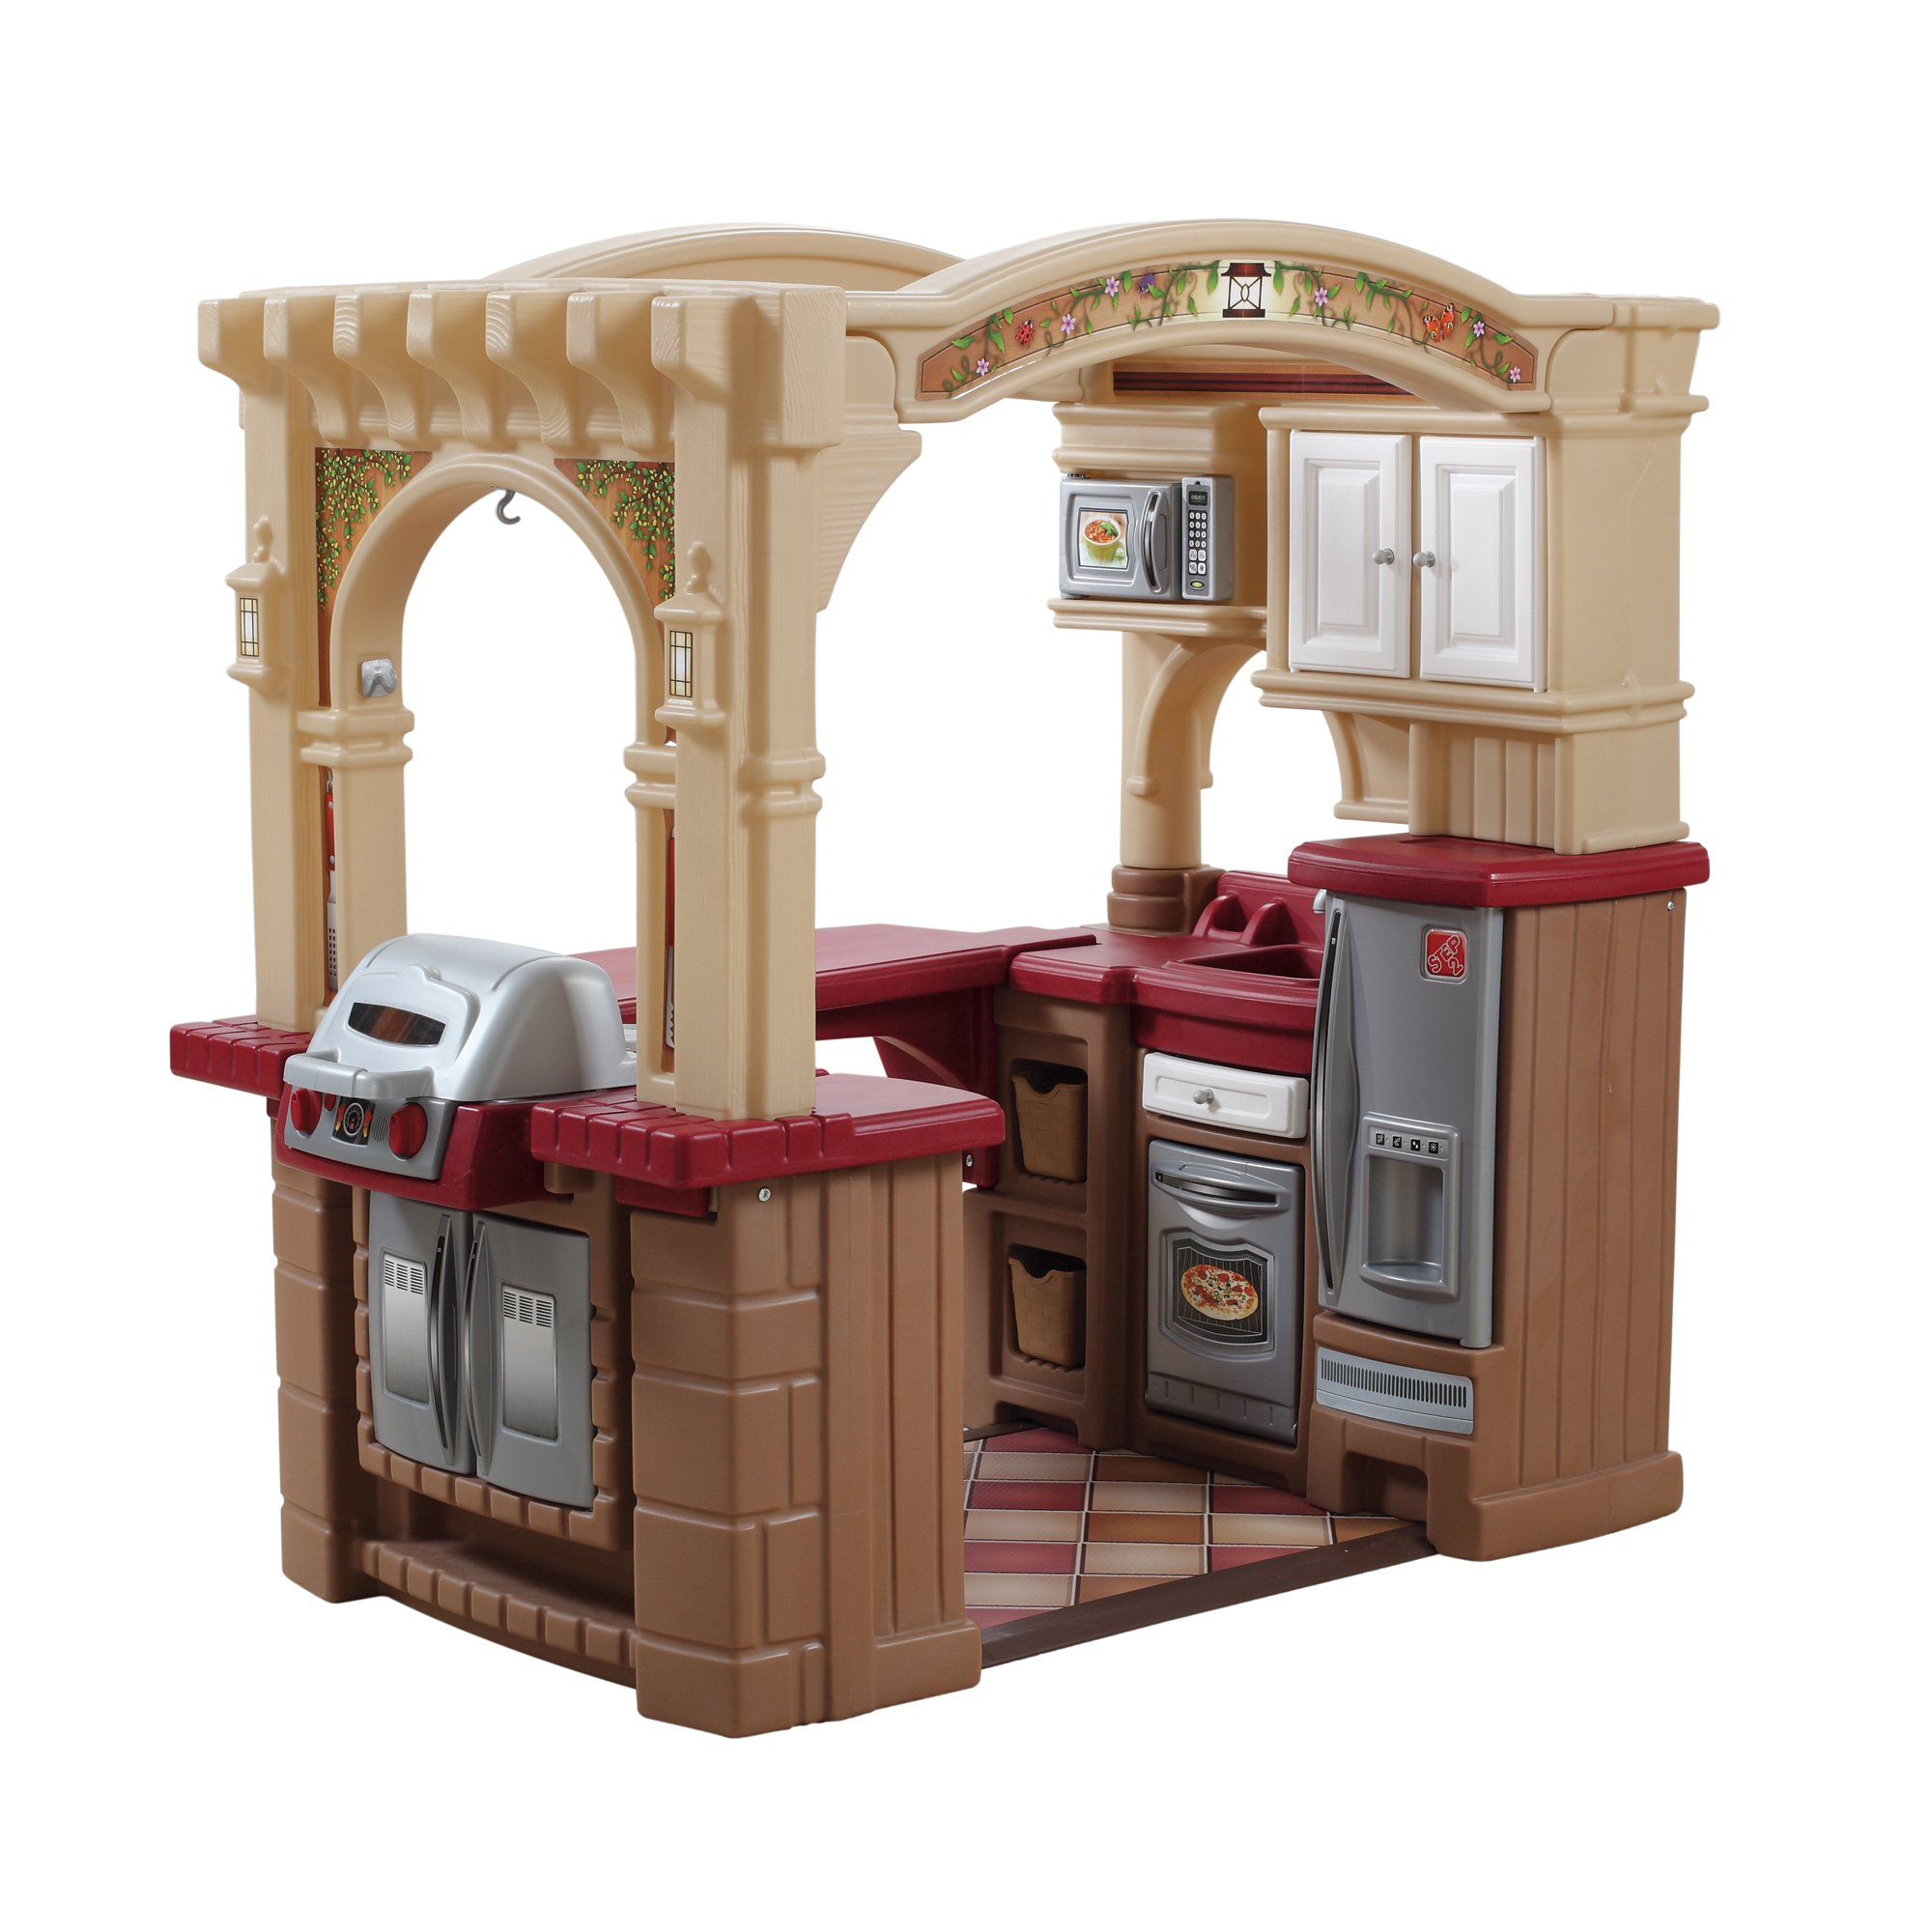 Step2  Grand Walk-in Kitchen and Grill, Brown/Tan/Maroon